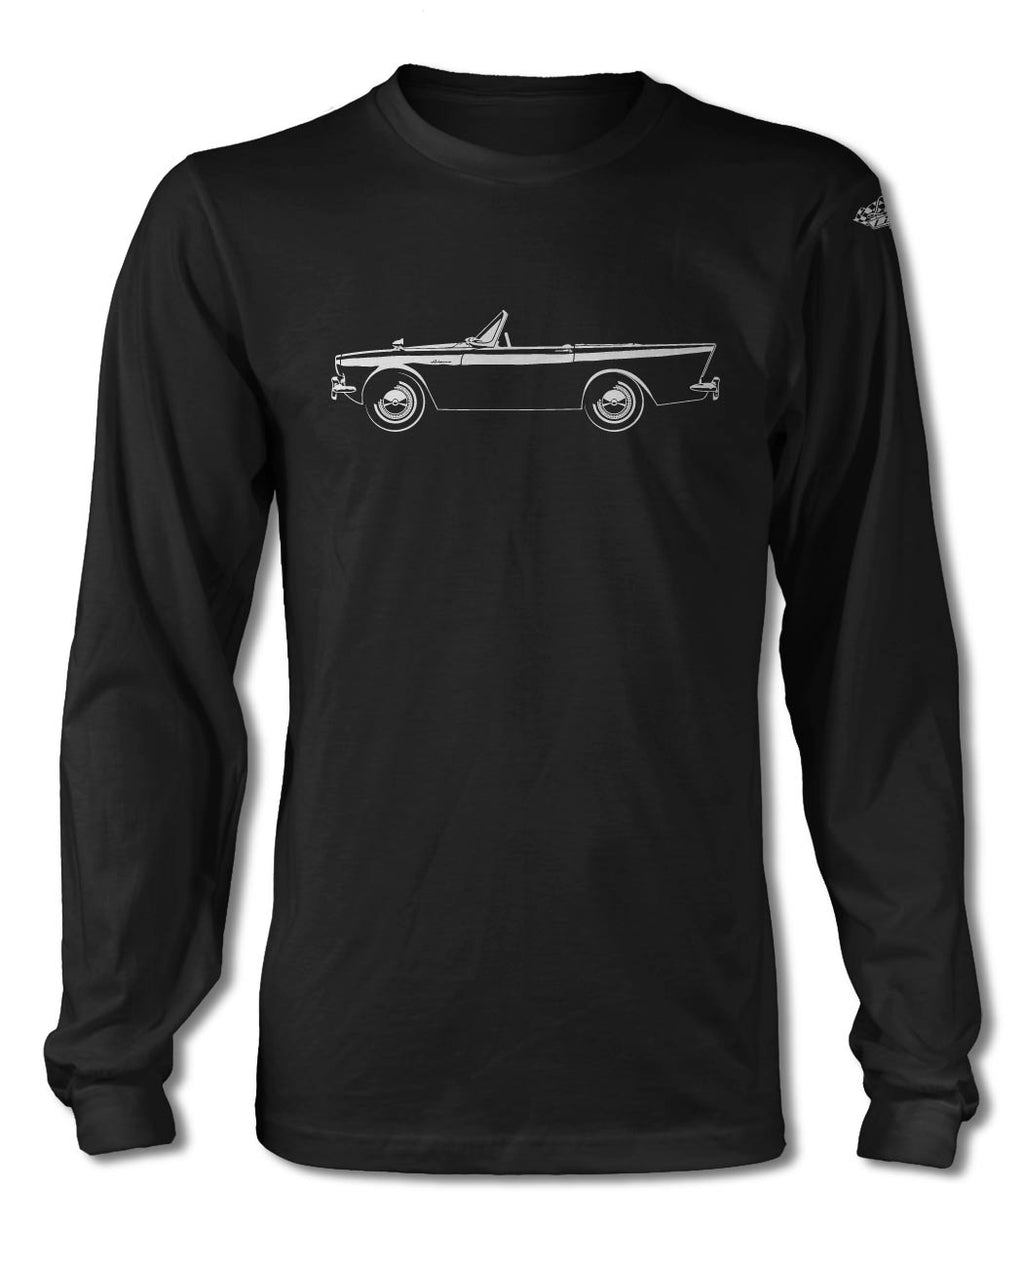 Sunbeam Alpine Series I & II T-Shirt - Long Sleeves - Side View